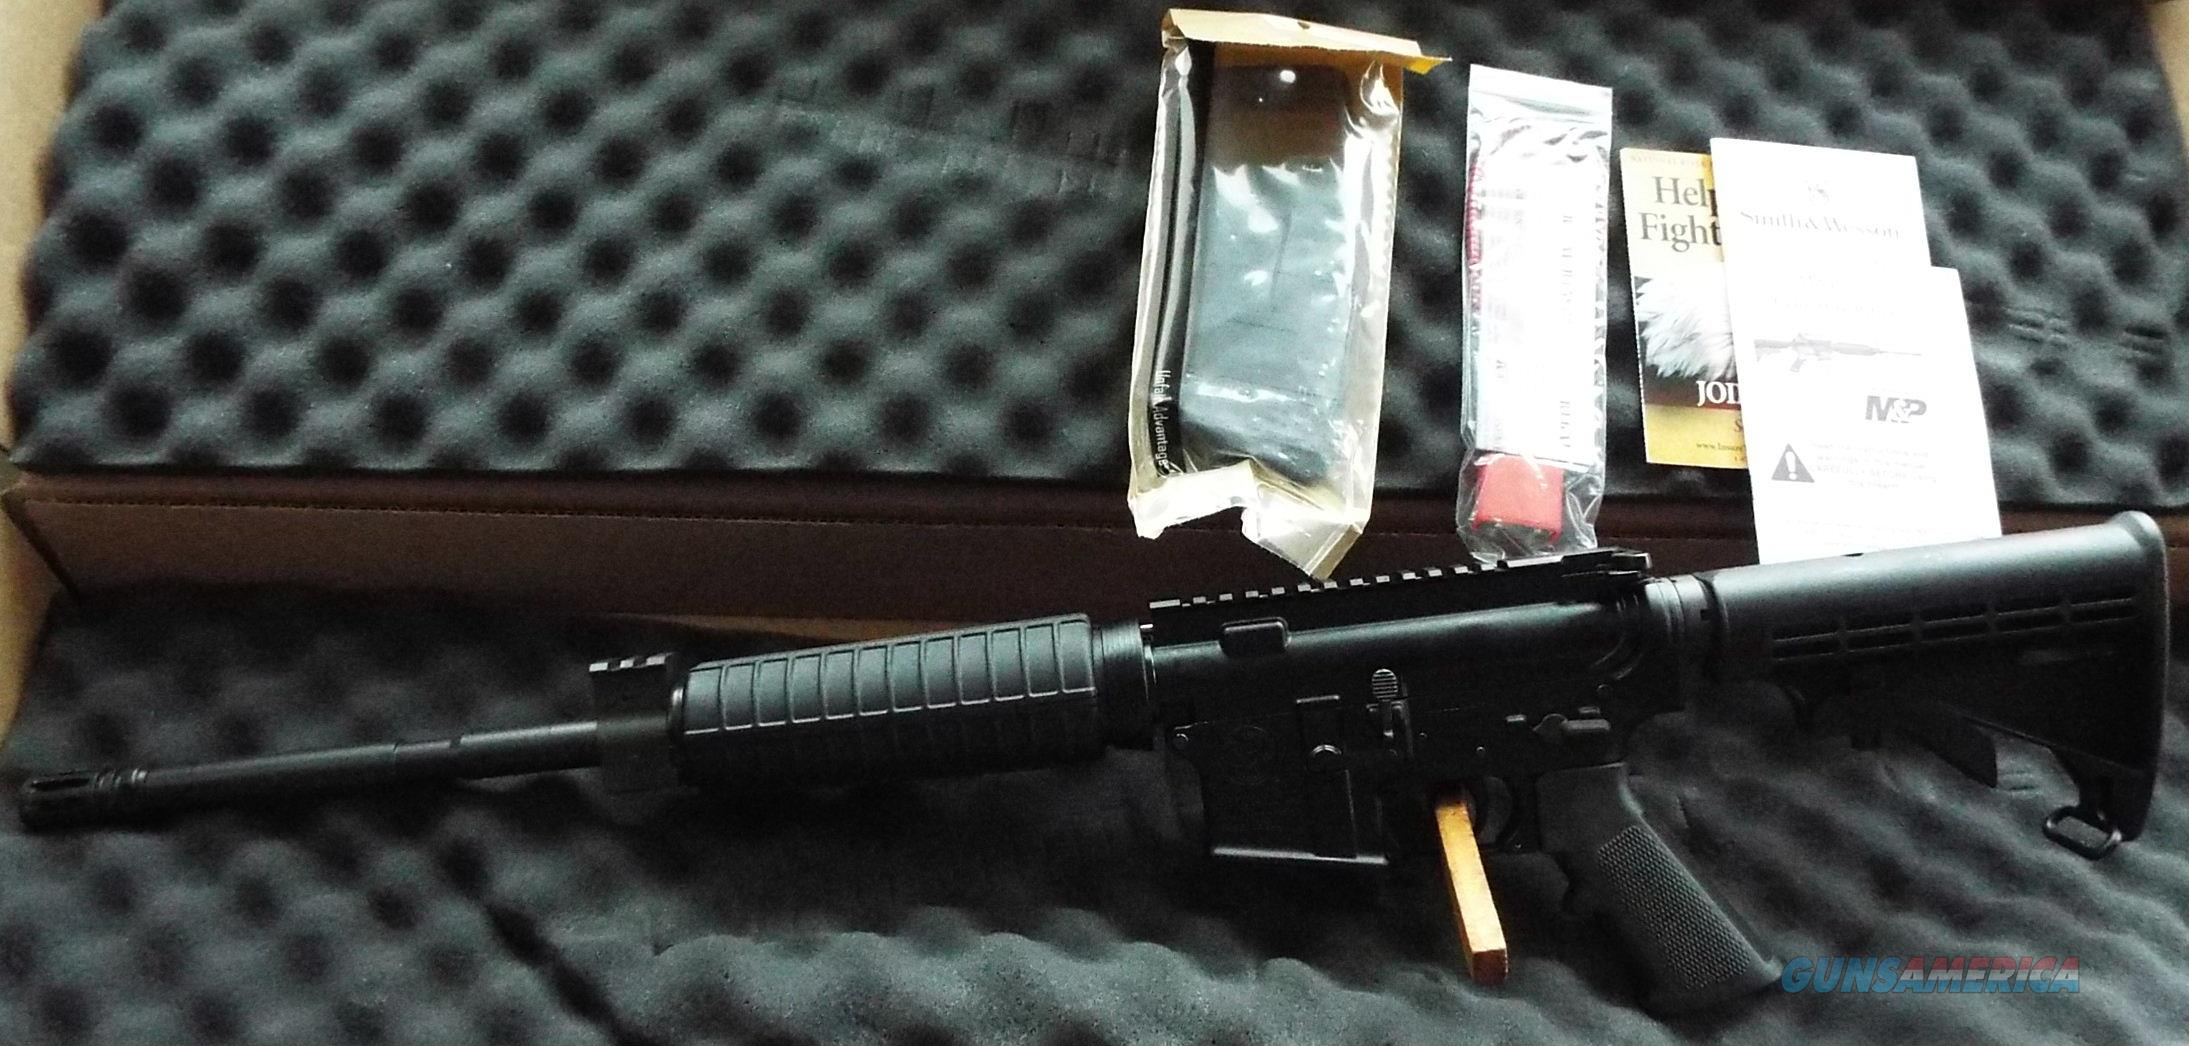 S&W AR15 Smith & Wesson M&P15 OR Optic Ready  223 Rem. / 5.56 NATO   811003  Guns > Rifles > Smith & Wesson Rifles